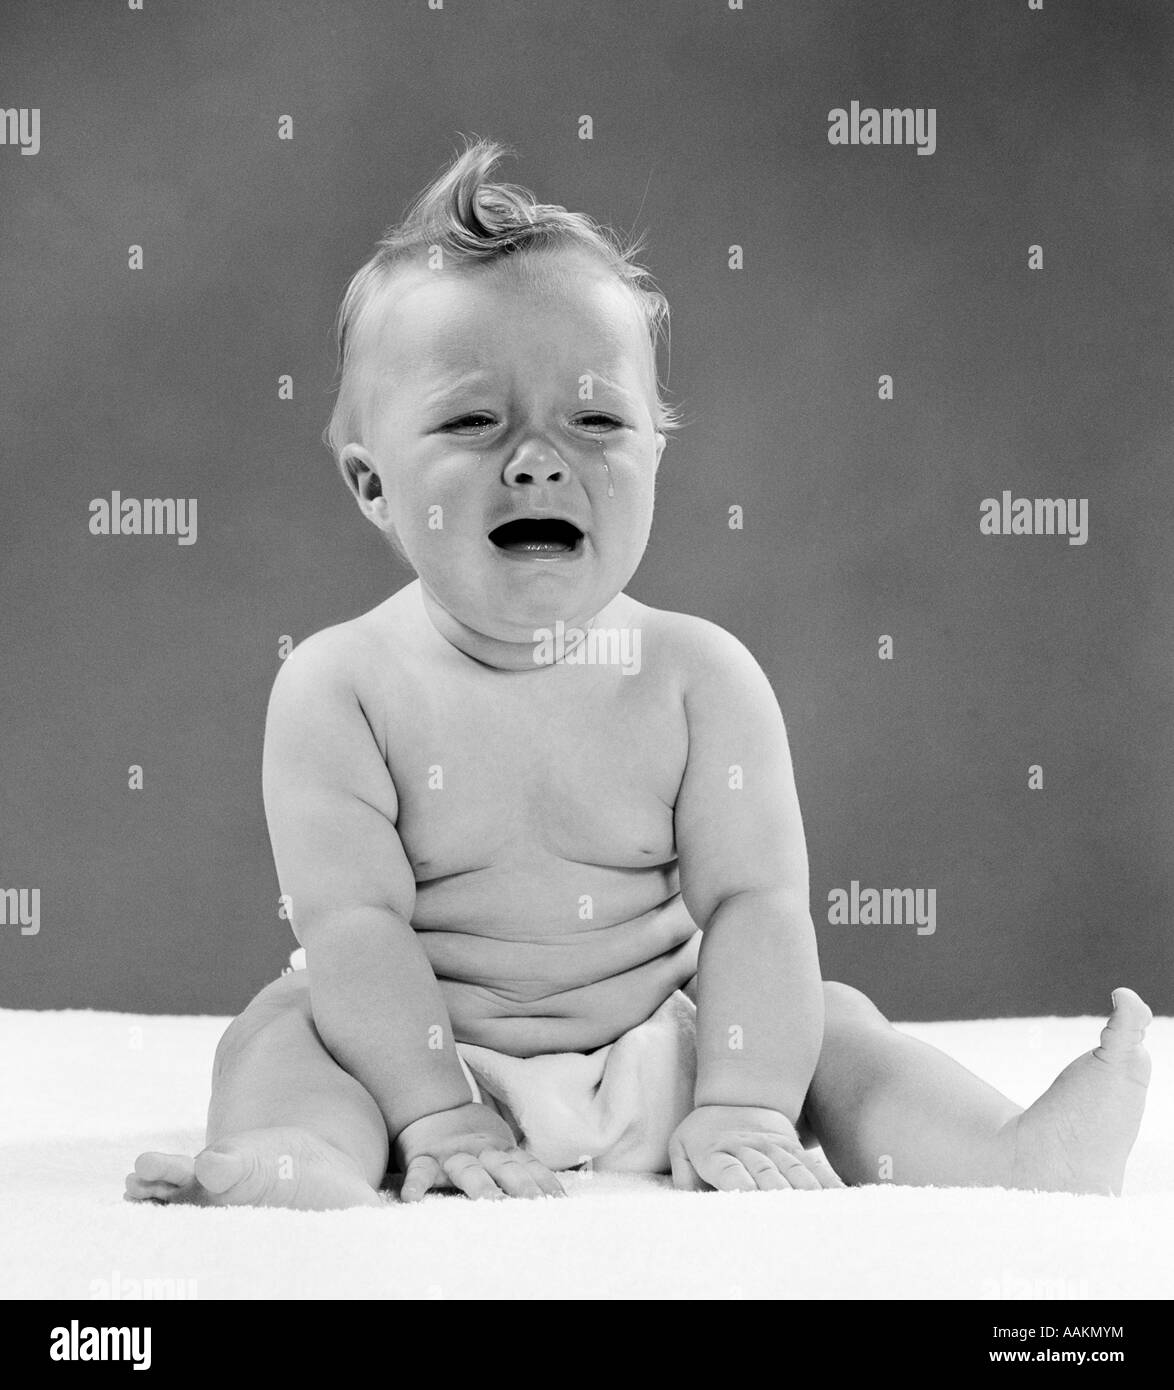 1950s CRYING BABY SEATED WITH DISTRESSED EXPRESSION & TEARS STREAMING OUT OF EYES - Stock Image